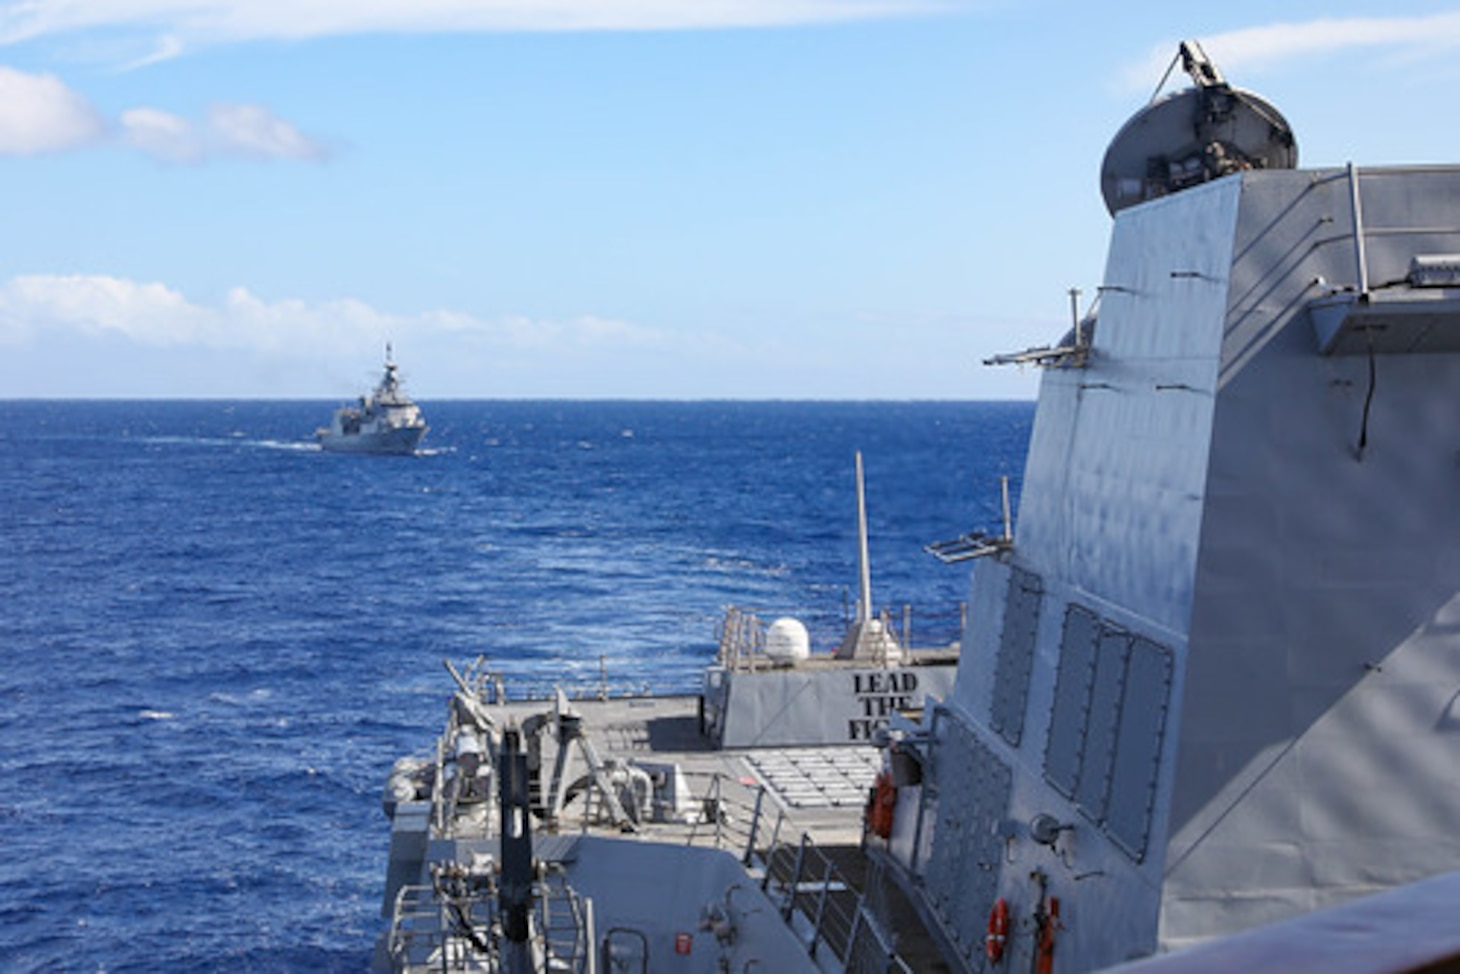 New Zealand, U.S. navies operate together in eastern Pacific